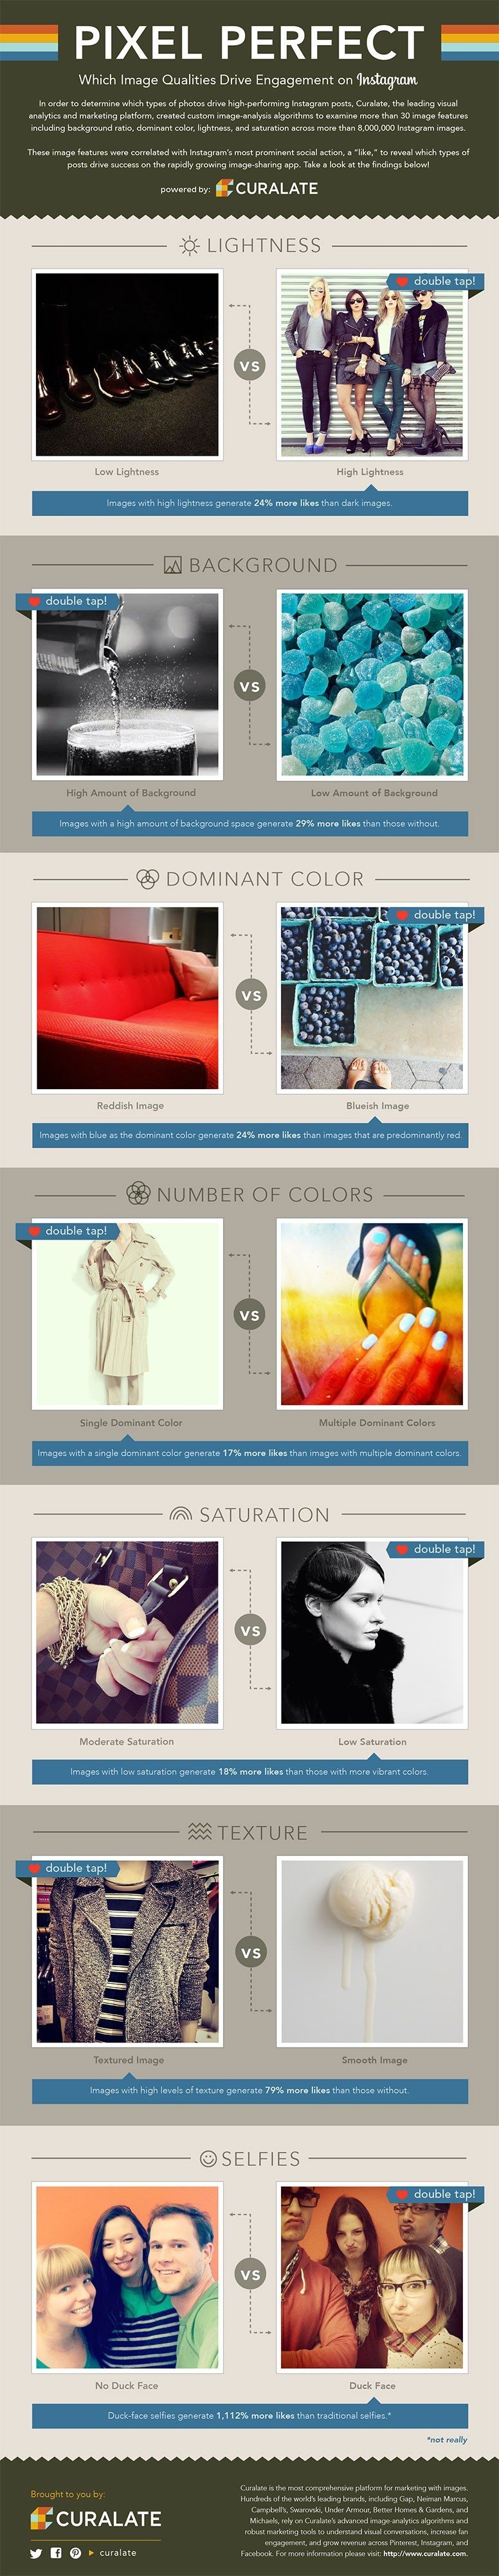 Curalate infographic Instagram